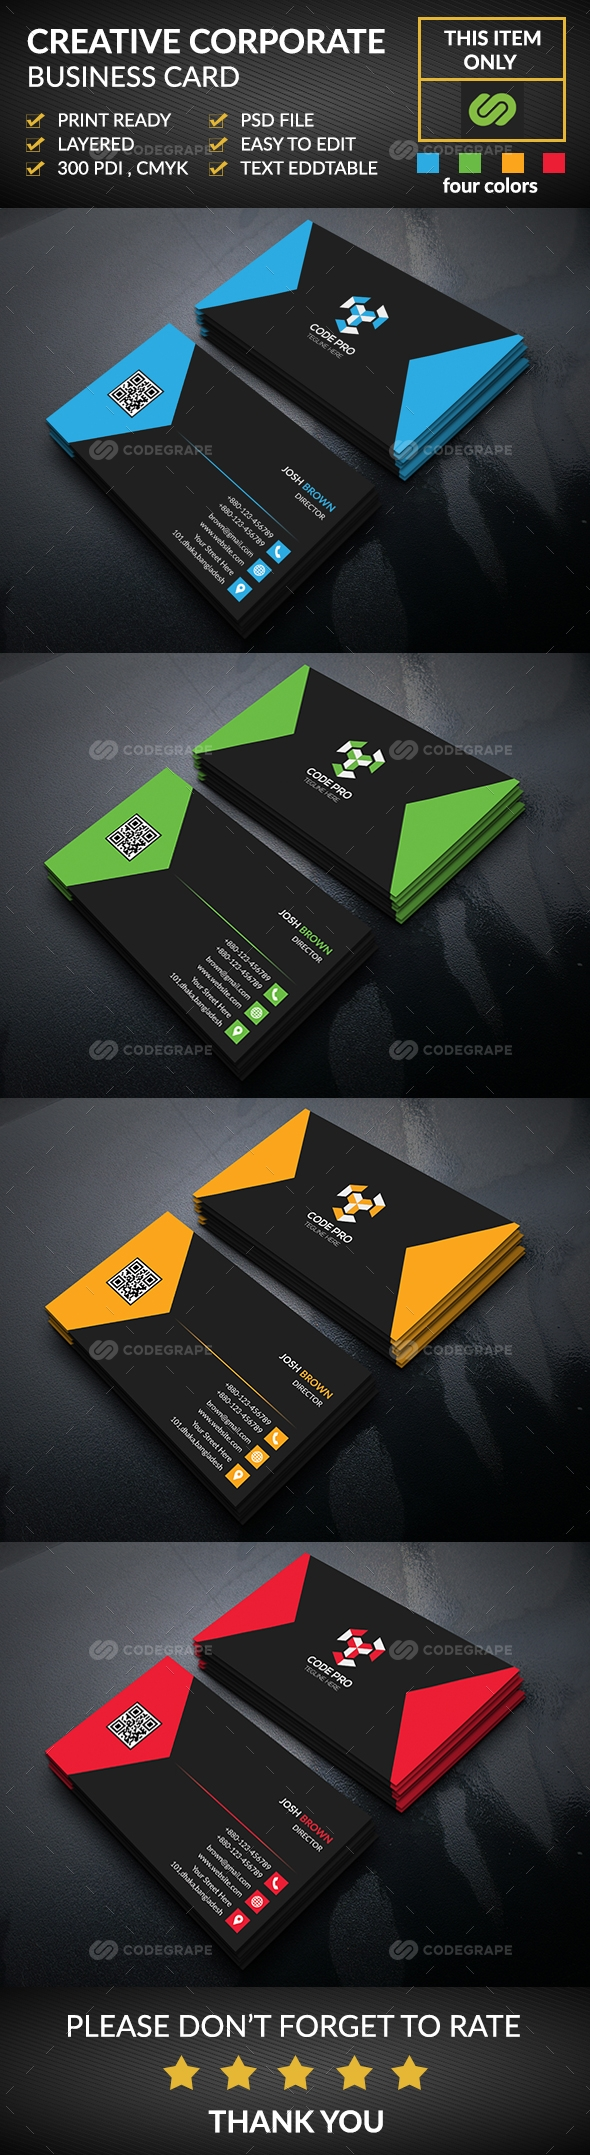 Corporate Business Card 4 in 1